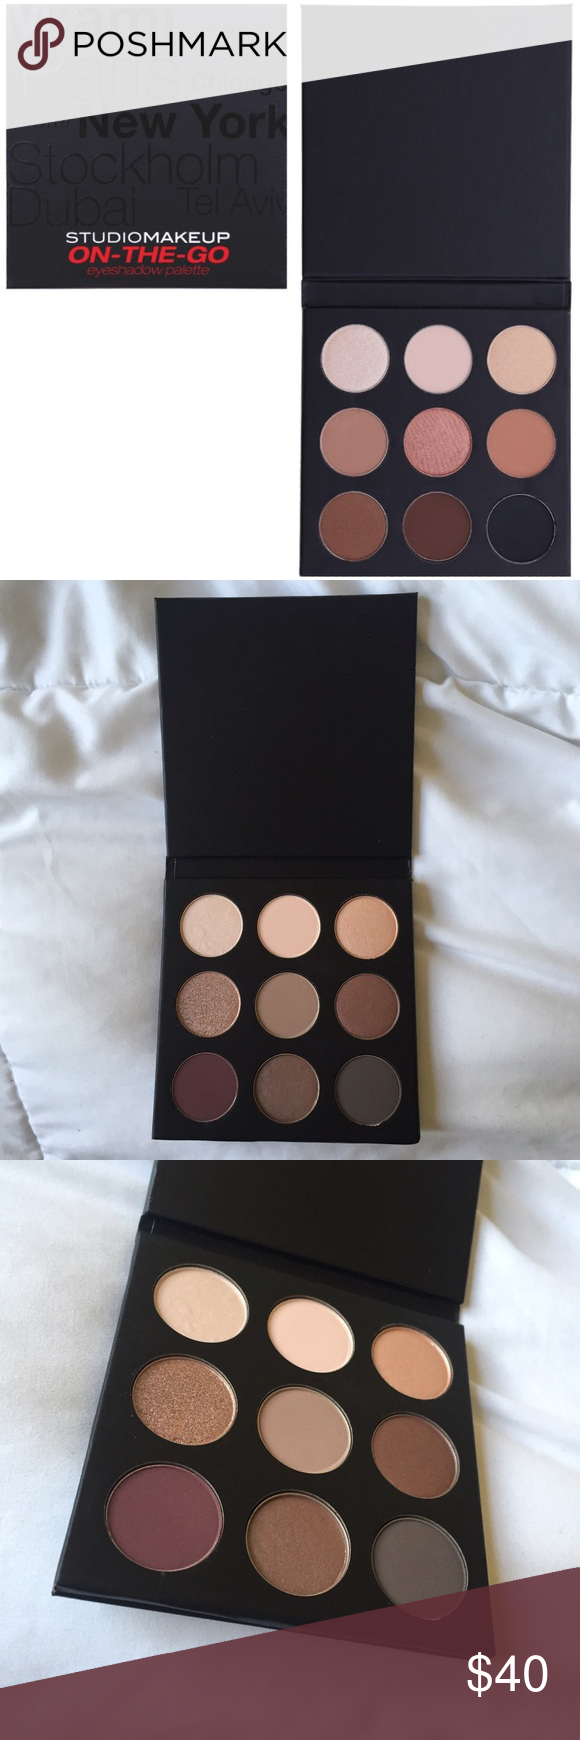 BNWT Studio Makeup Eyeshadow Palette Studio Makeup OnThe